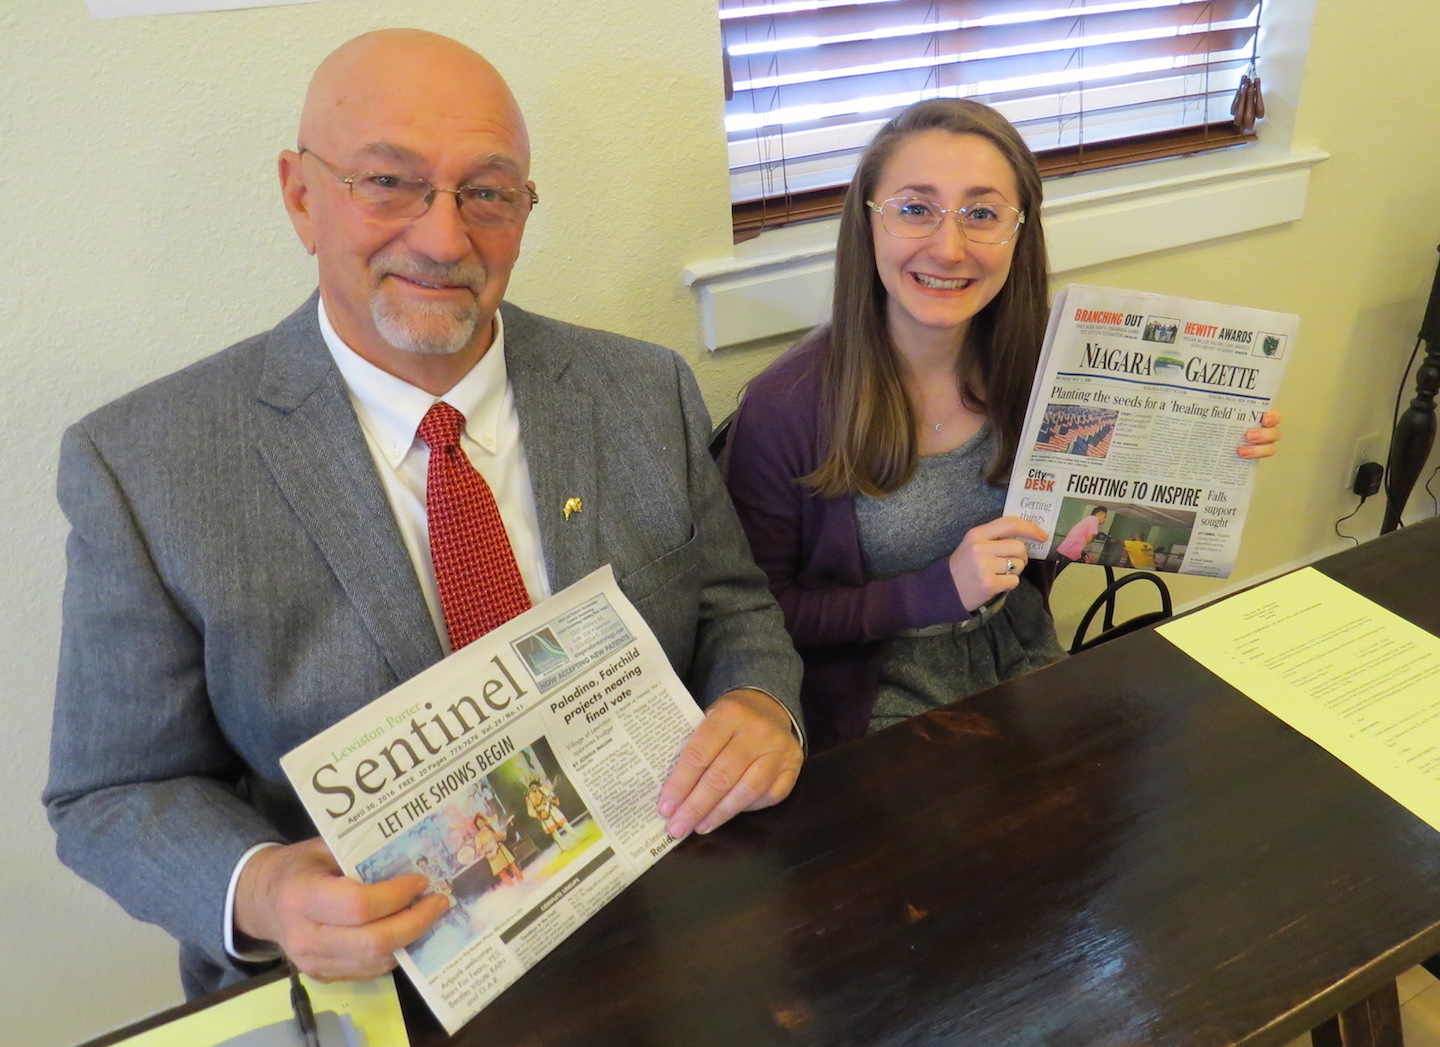 Bruce Sutherland, sitting in Joshua Maloni's seat, holds a copy of The Sentinel, while Joan McDonough, a reporter for the Niagara Gazette, hold a copy of her newspaper.